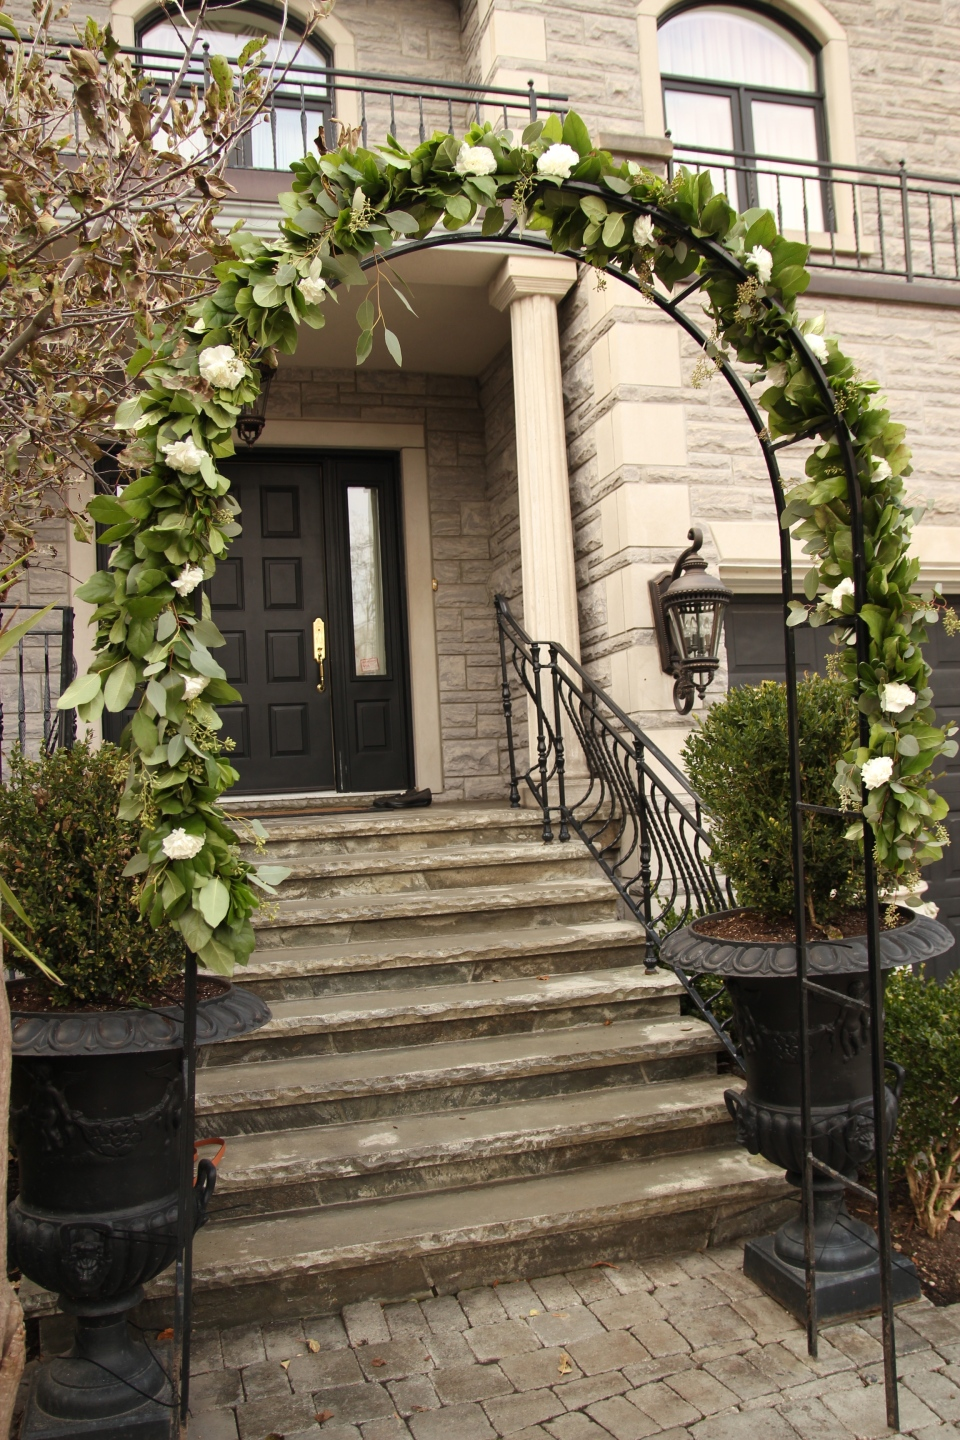 The garland installed on the entrance archway of th Bride's home